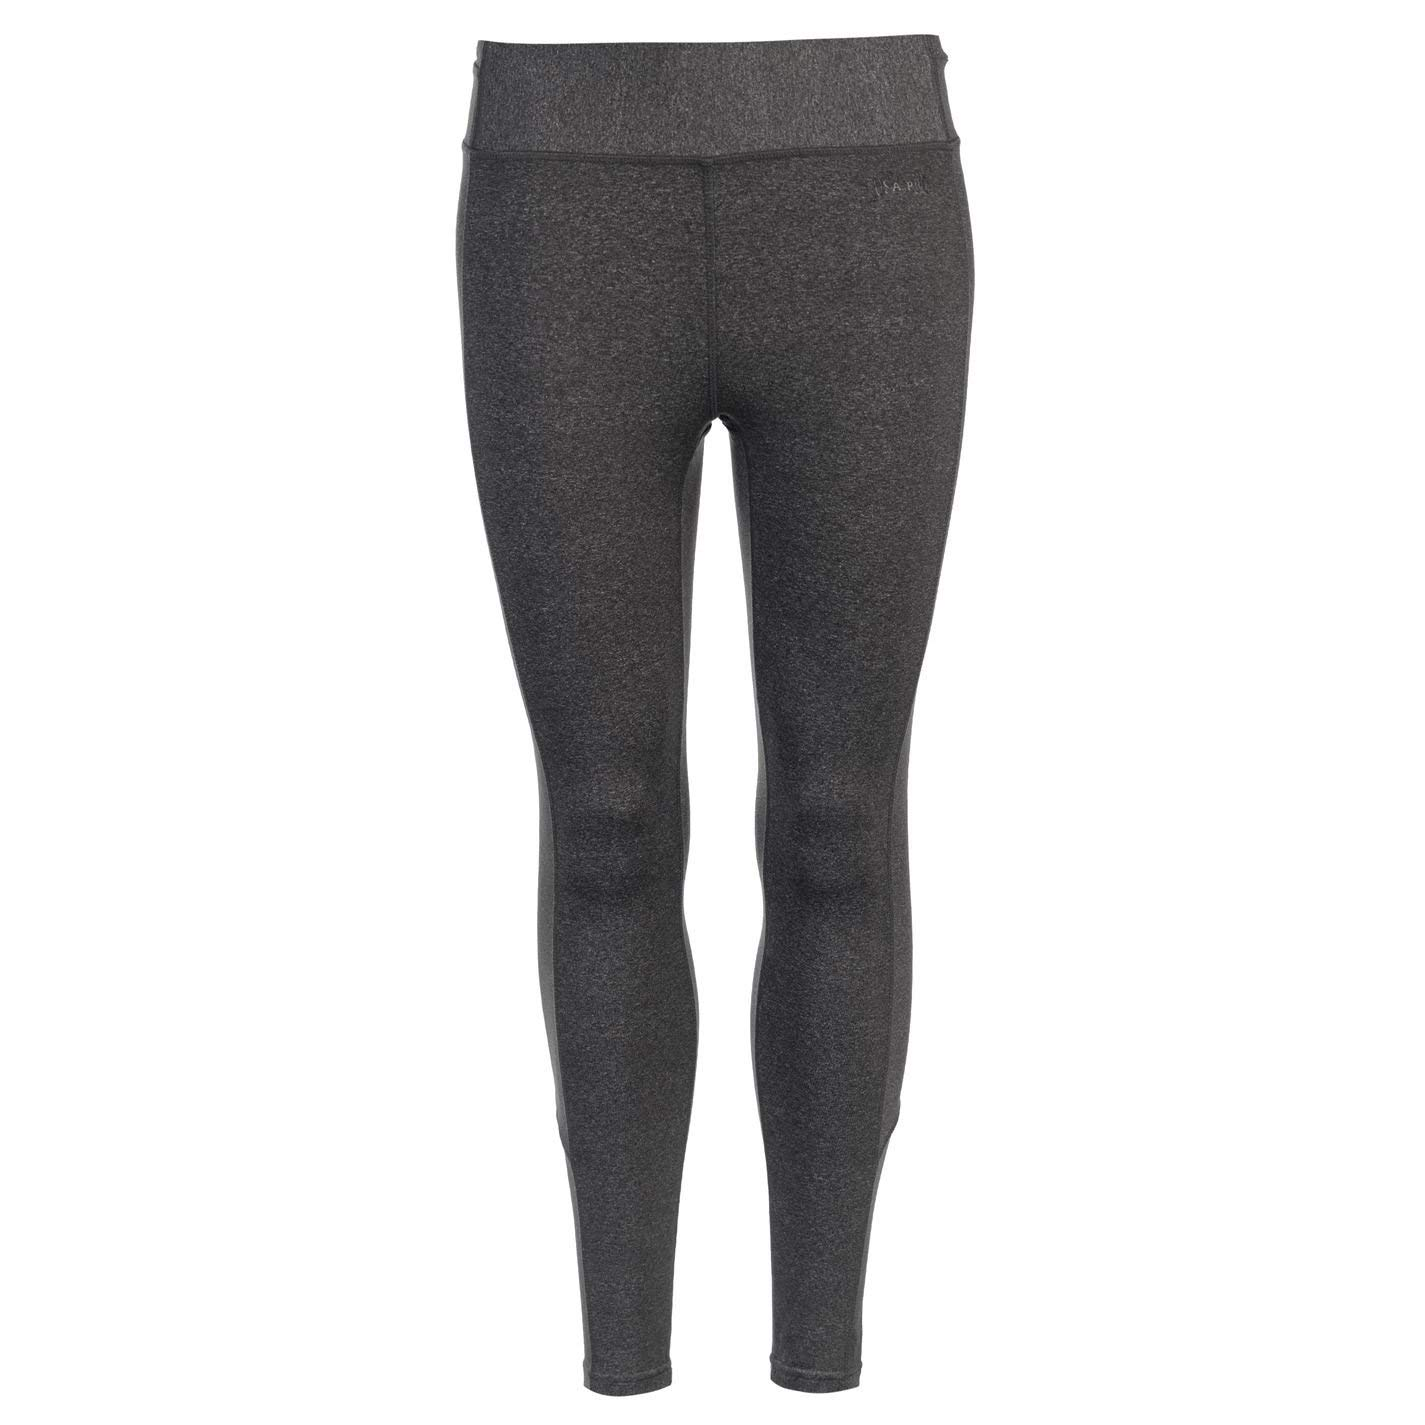 Get Quotations · USA Pro Womens Ladies Training Tights Pants Bottoms  Running Workout Clothing Charcoal Marl 10 (S 02a04c5144